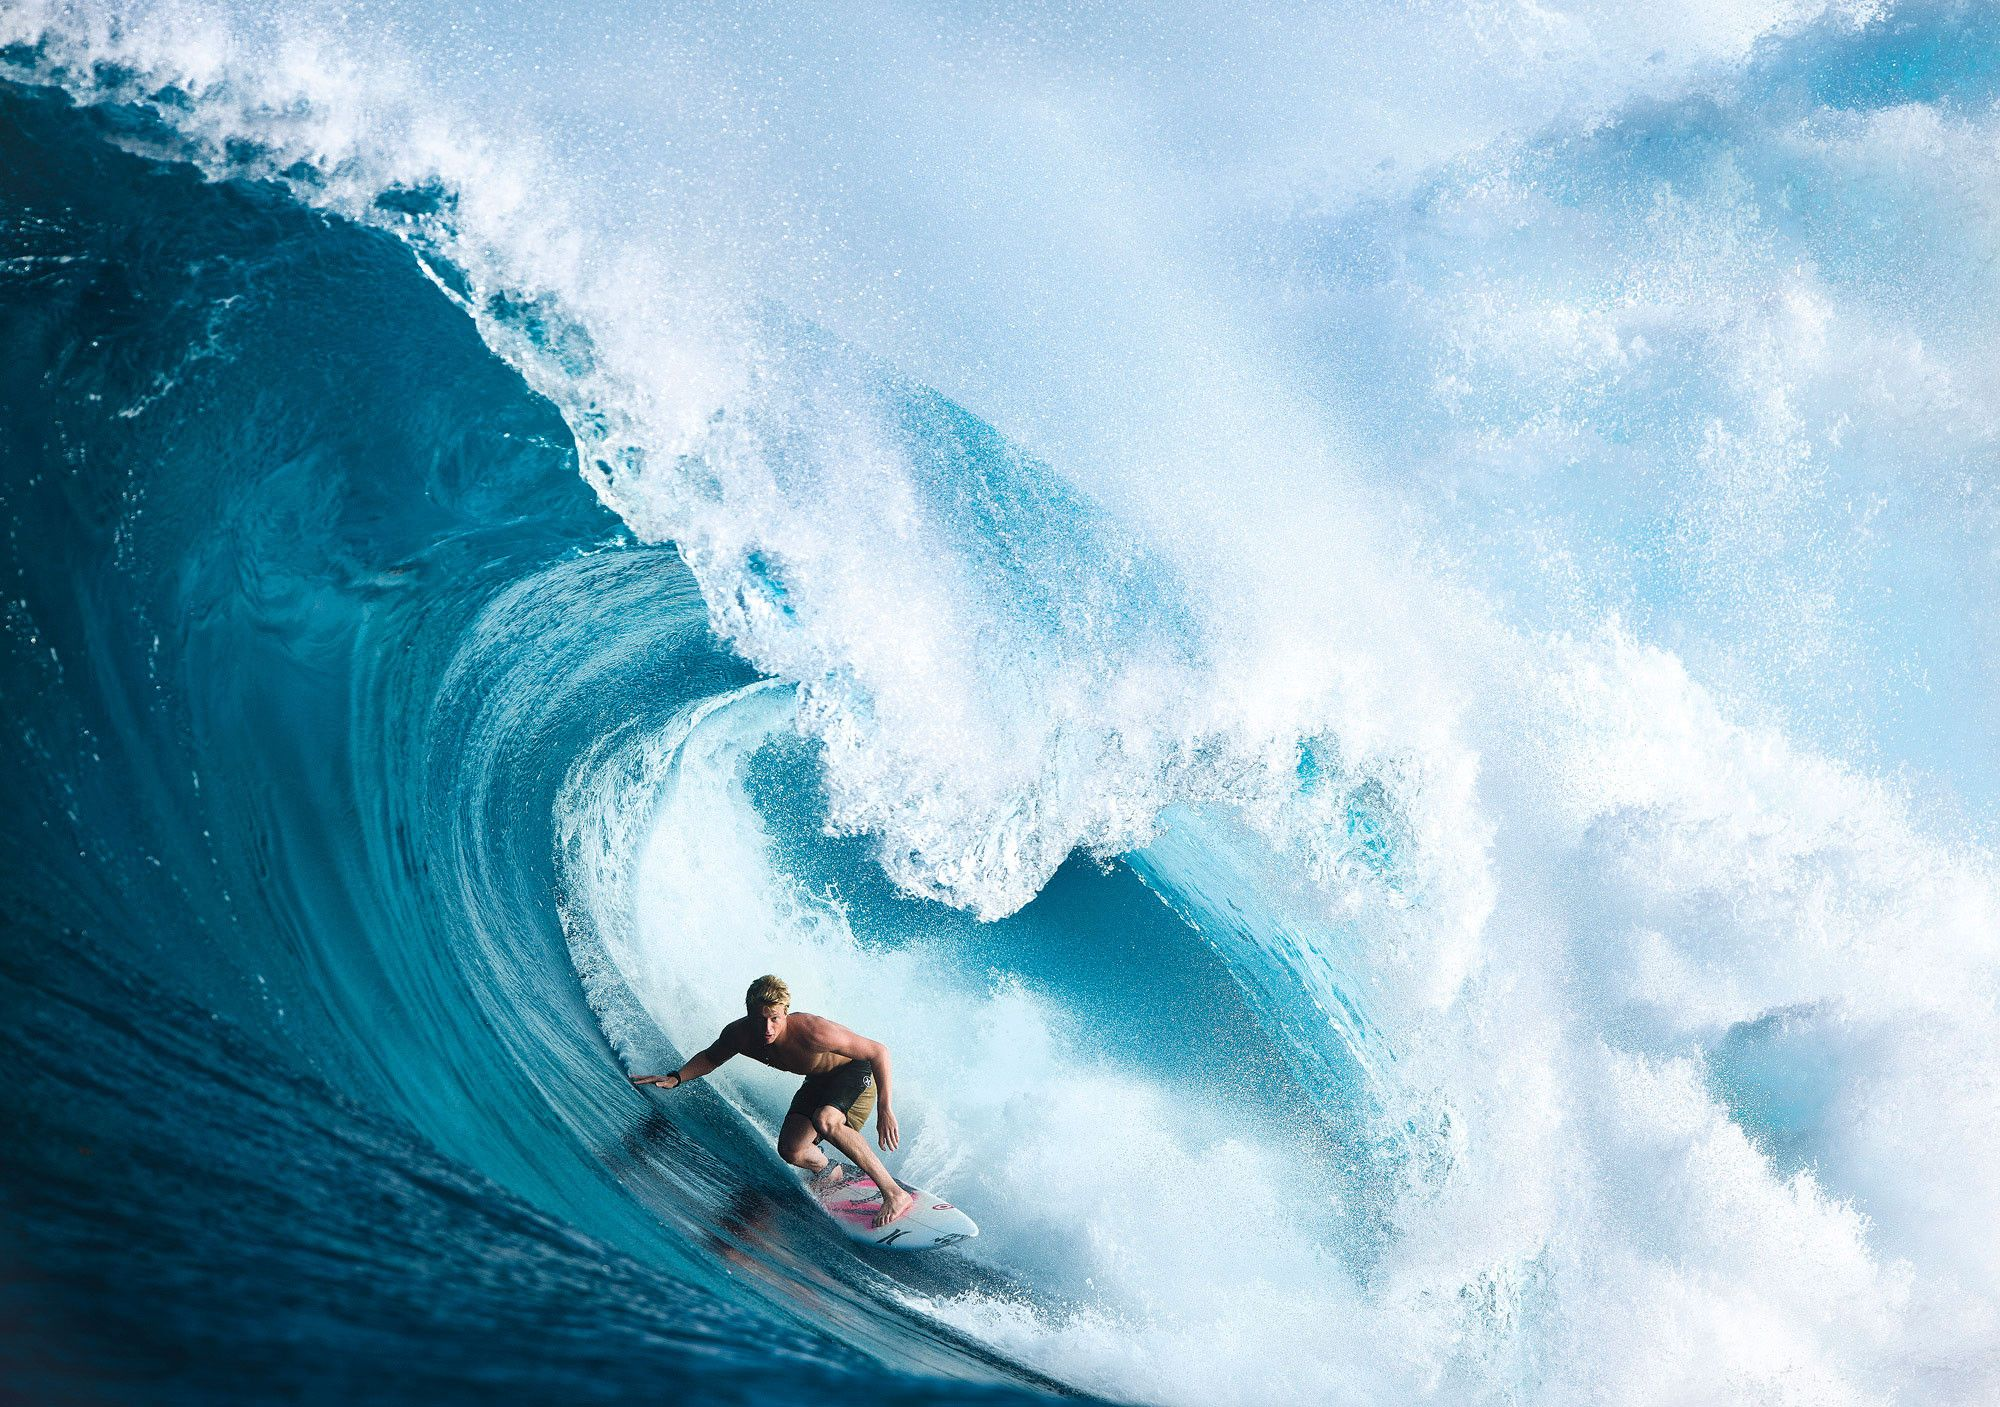 4K Surfing Wallpapers   Top 4K Surfing Backgrounds 2000x1407